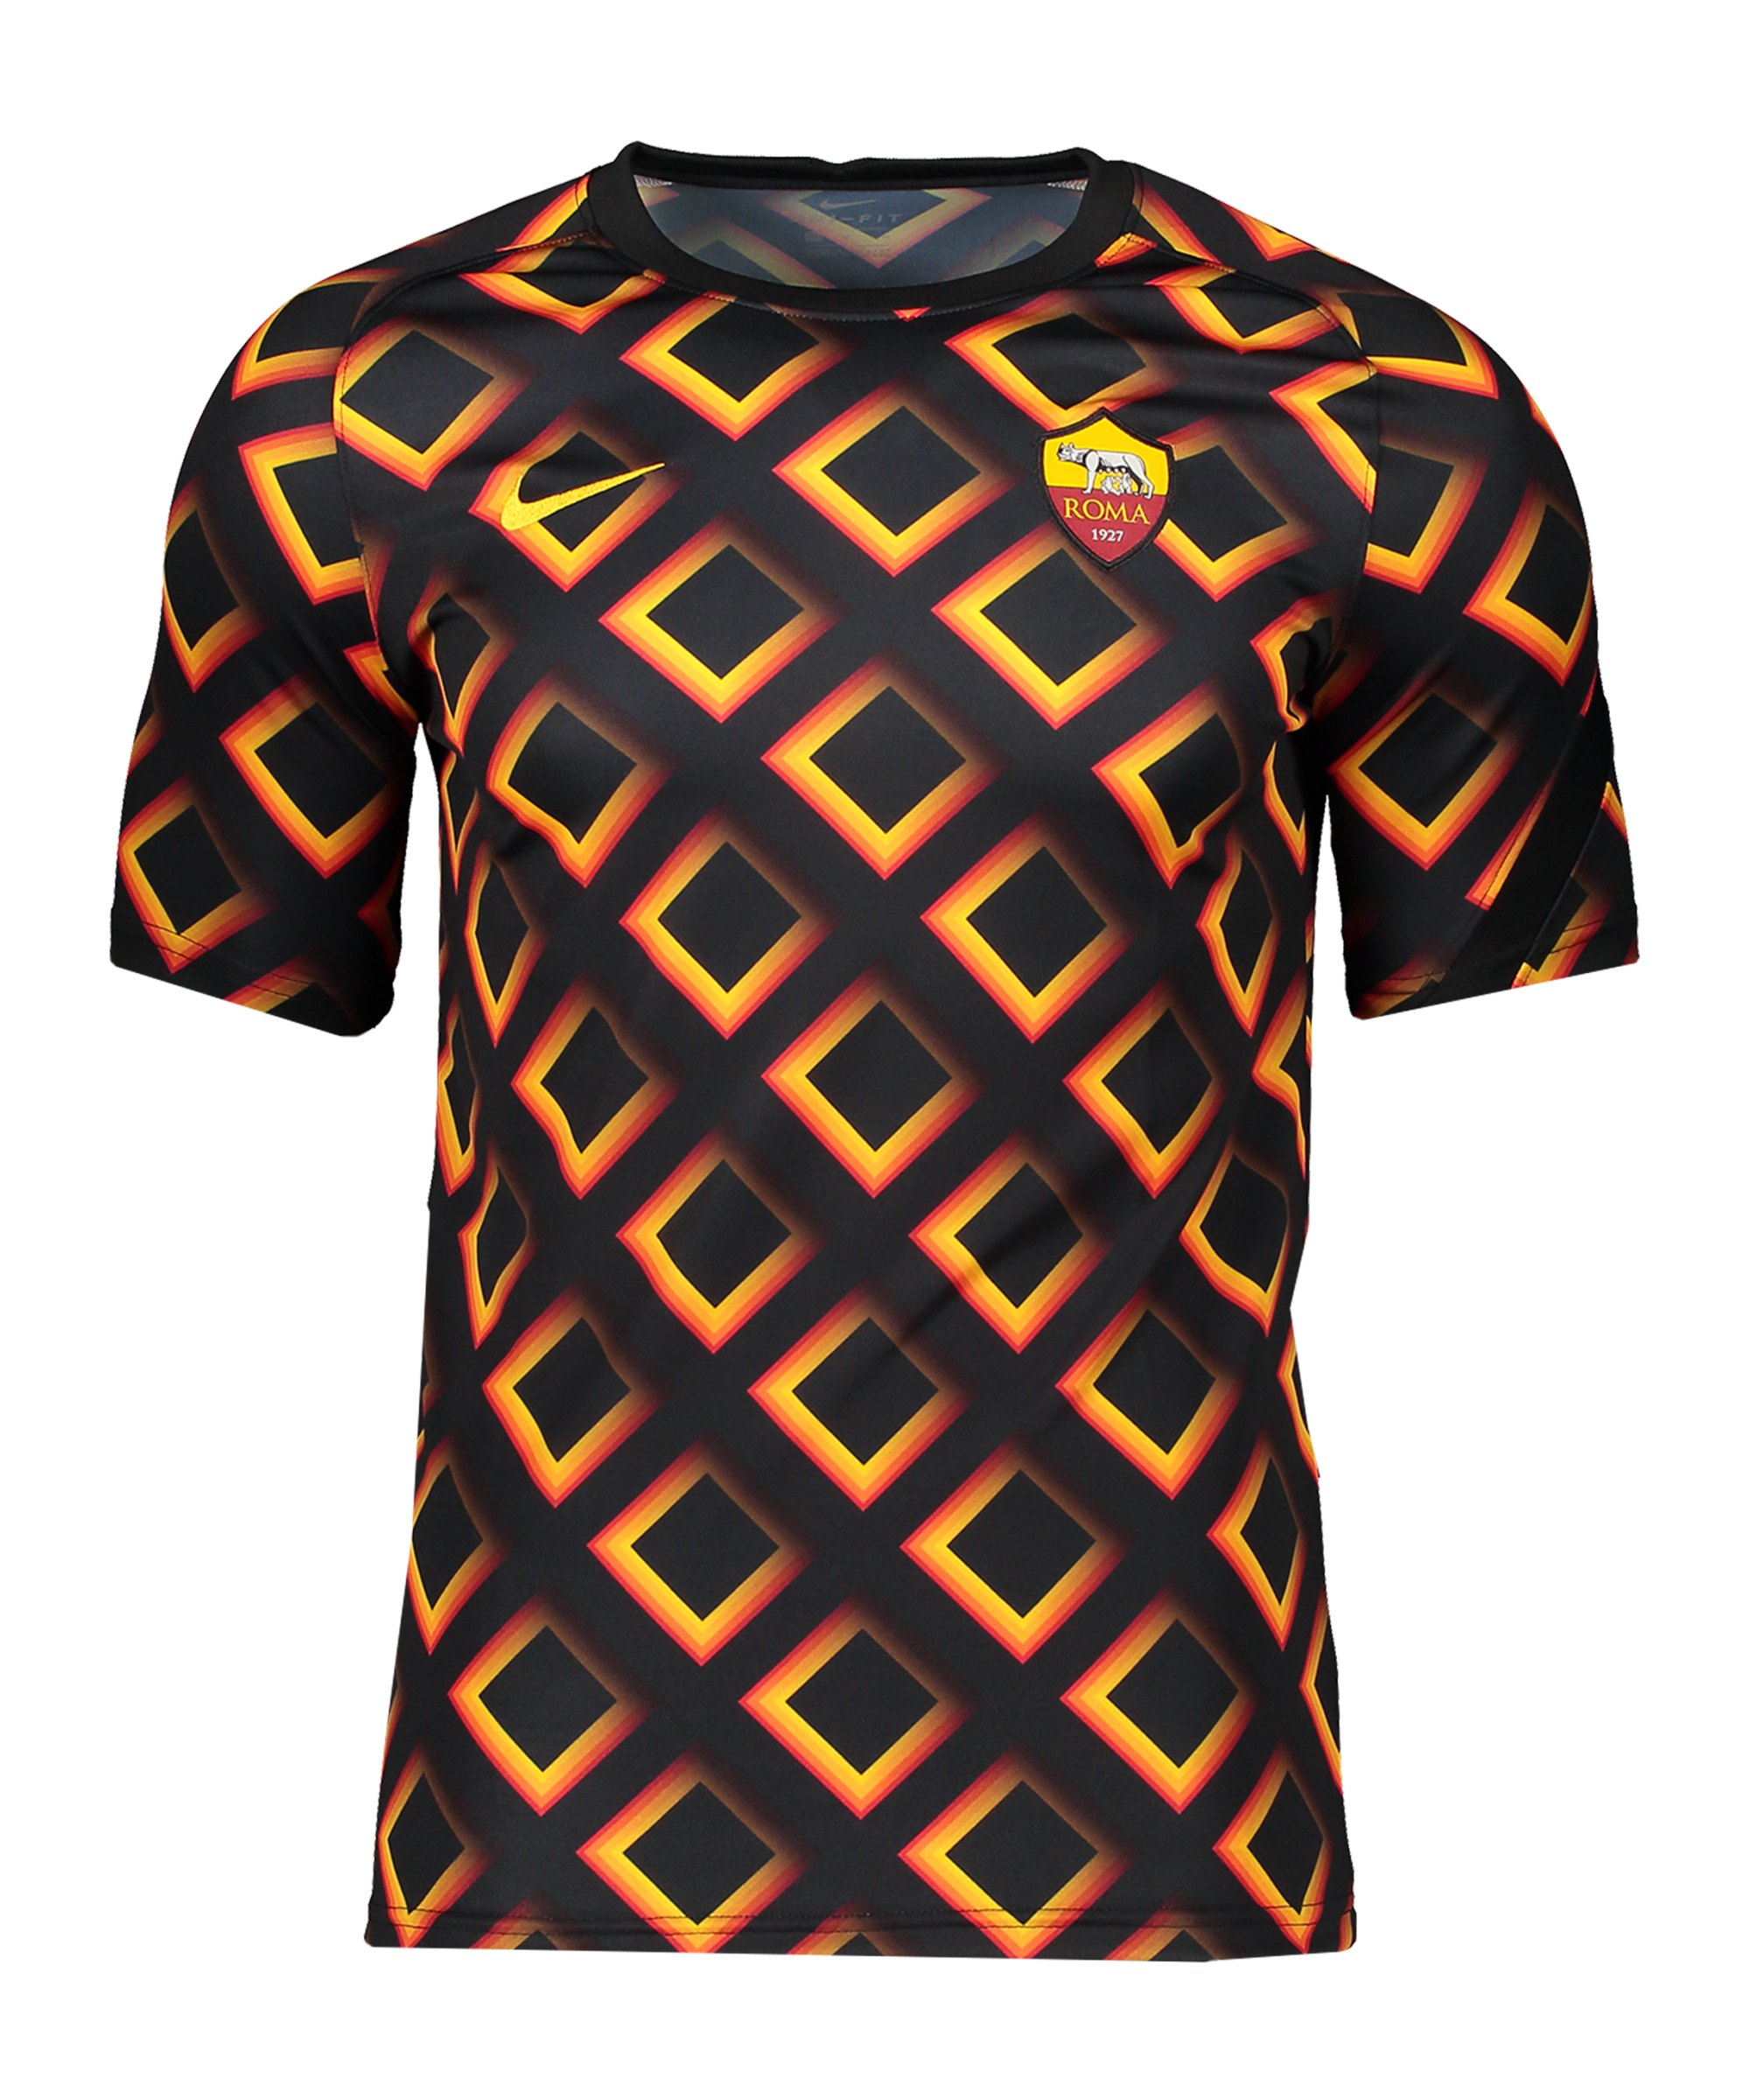 Nike AS Rom Top T-Shirt Kids Schwarz F010 - schwarz